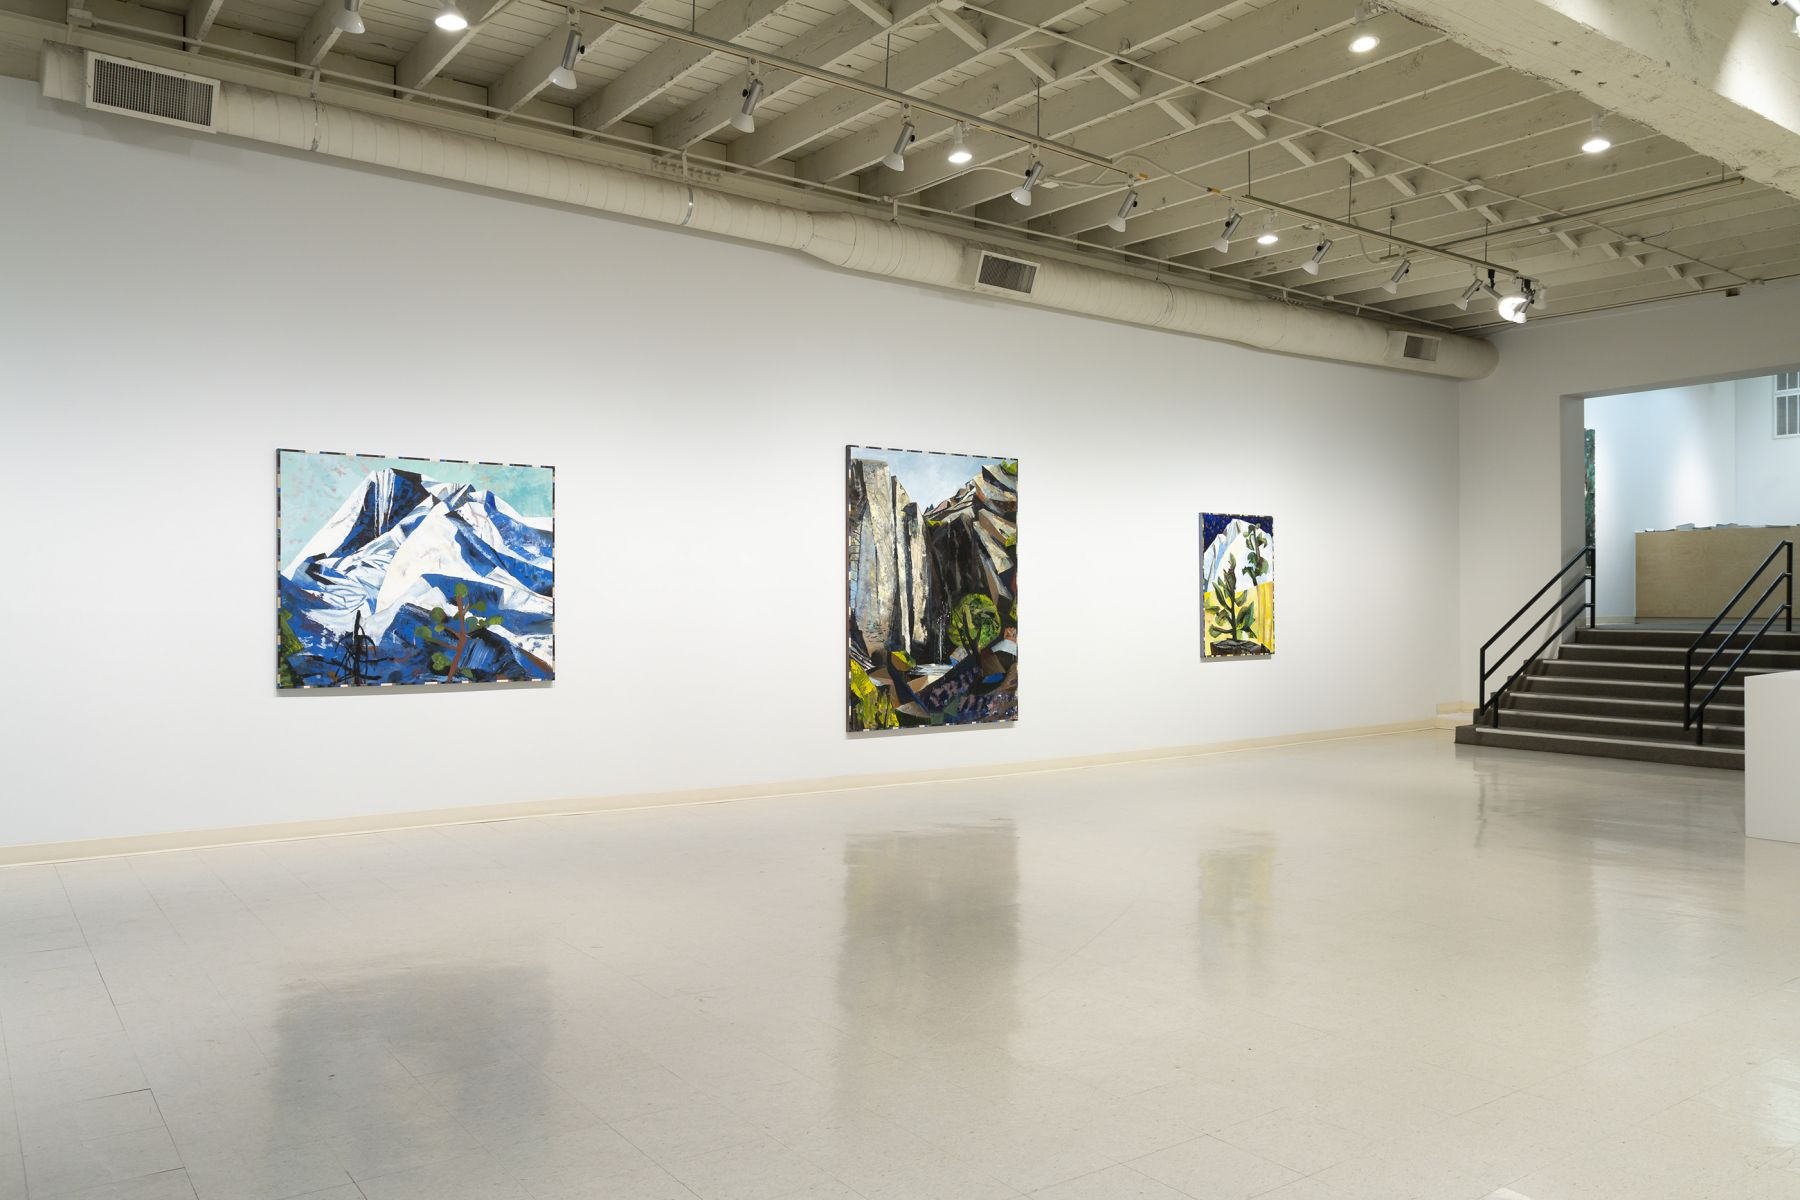 Lucinda Parker - Snow and Ice: Coin of the Realm - February 2019 - Installation View 02